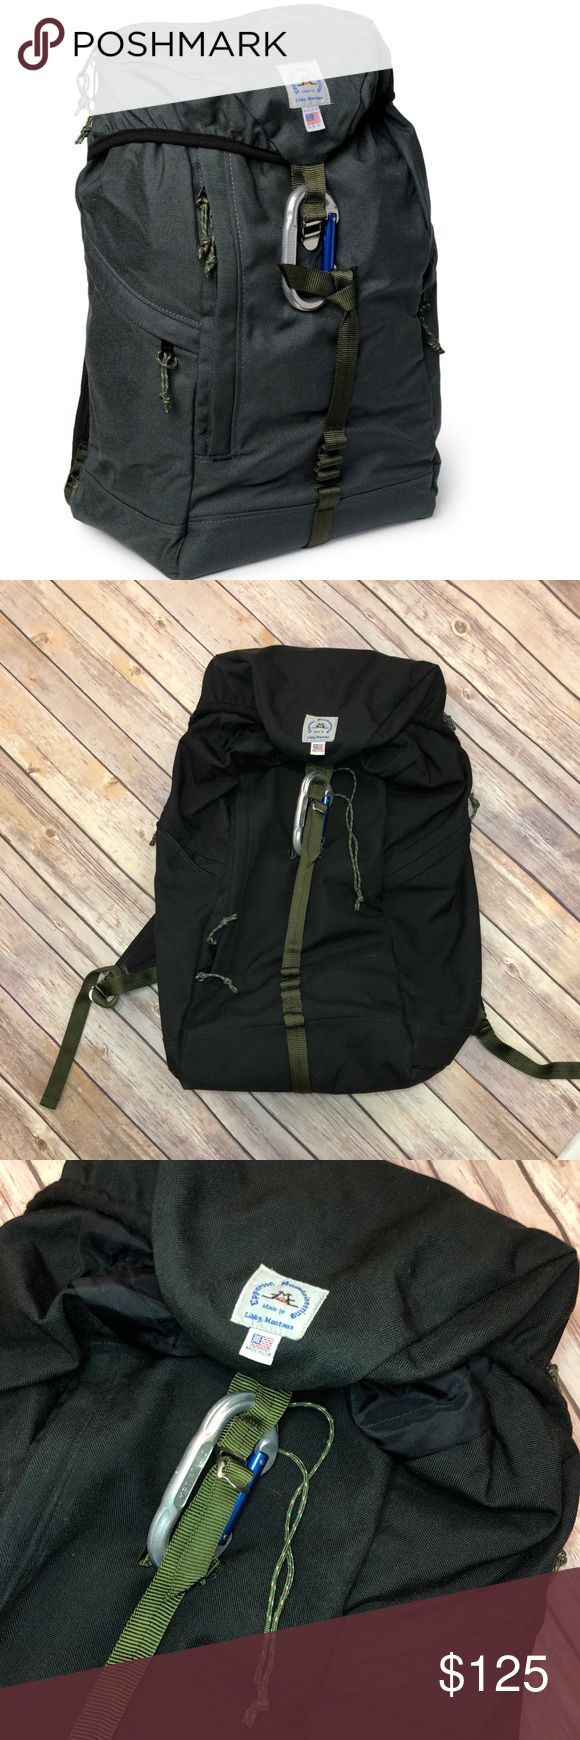 """Epperson Mountaineering Large Climb Pack Epperson Mountaineering Large Climb Pack, great preowned condition.  Black with moss (forest green) webbing and accents.    -DWR-coated 1000 denier Cordura nylon fabric -4 external zipper pockets and inner laptop sleeve -American-made, carabiner closure -Multiple loop webbing (a.k.a. daisy chain)  -Military-grade tubular nylon webbing -Seam-sealed inner compartments -Bar-tack reinforcement at stress points and tension areas   Size Spec: 22.5L / 20"""" x…"""